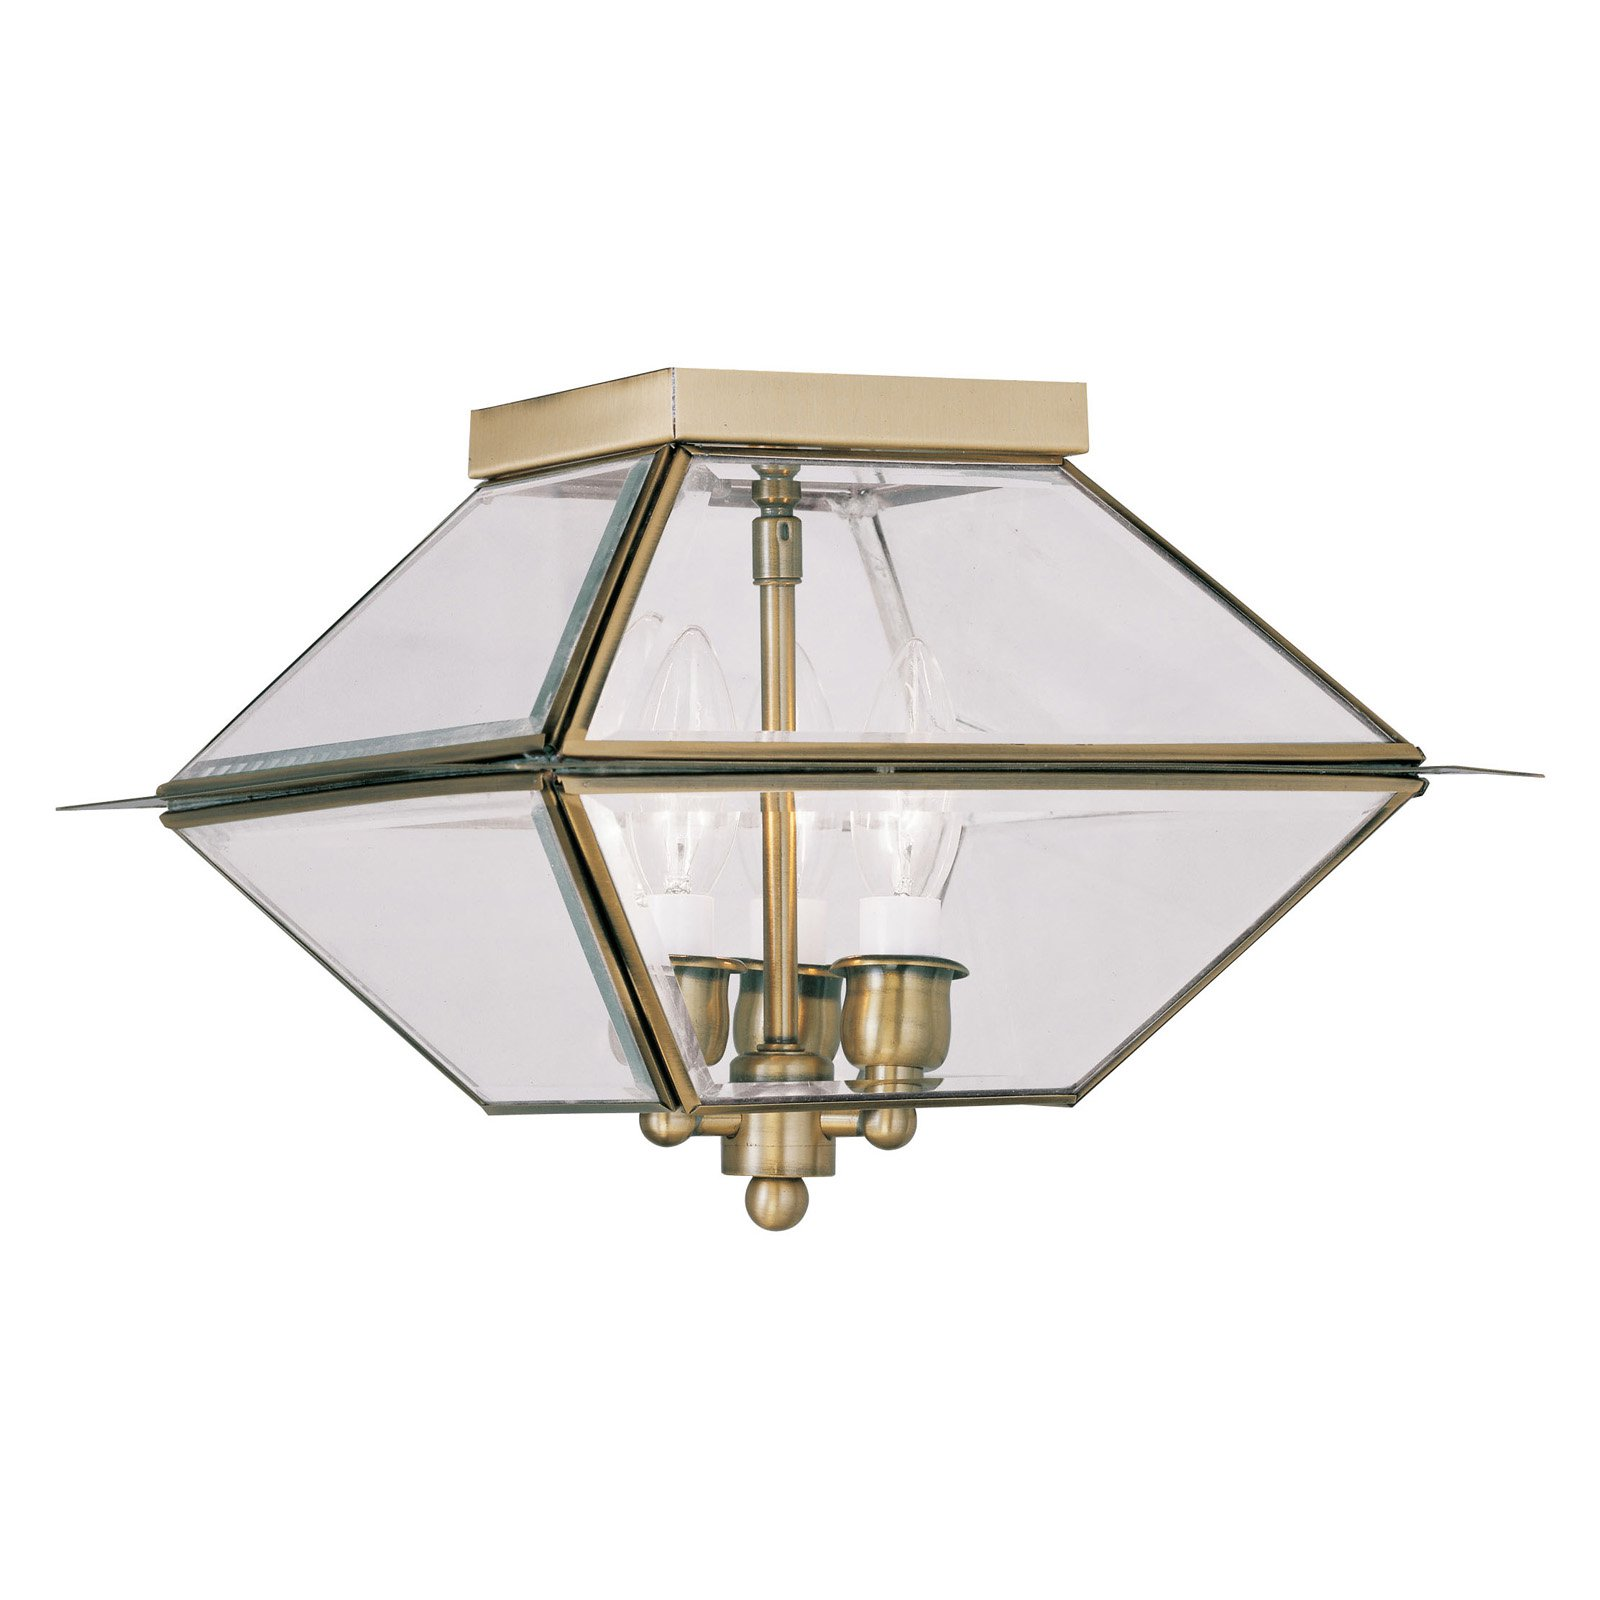 Livex Westover 2185-01 3-Light Outdoor Ceiling Mount in Antique Brass